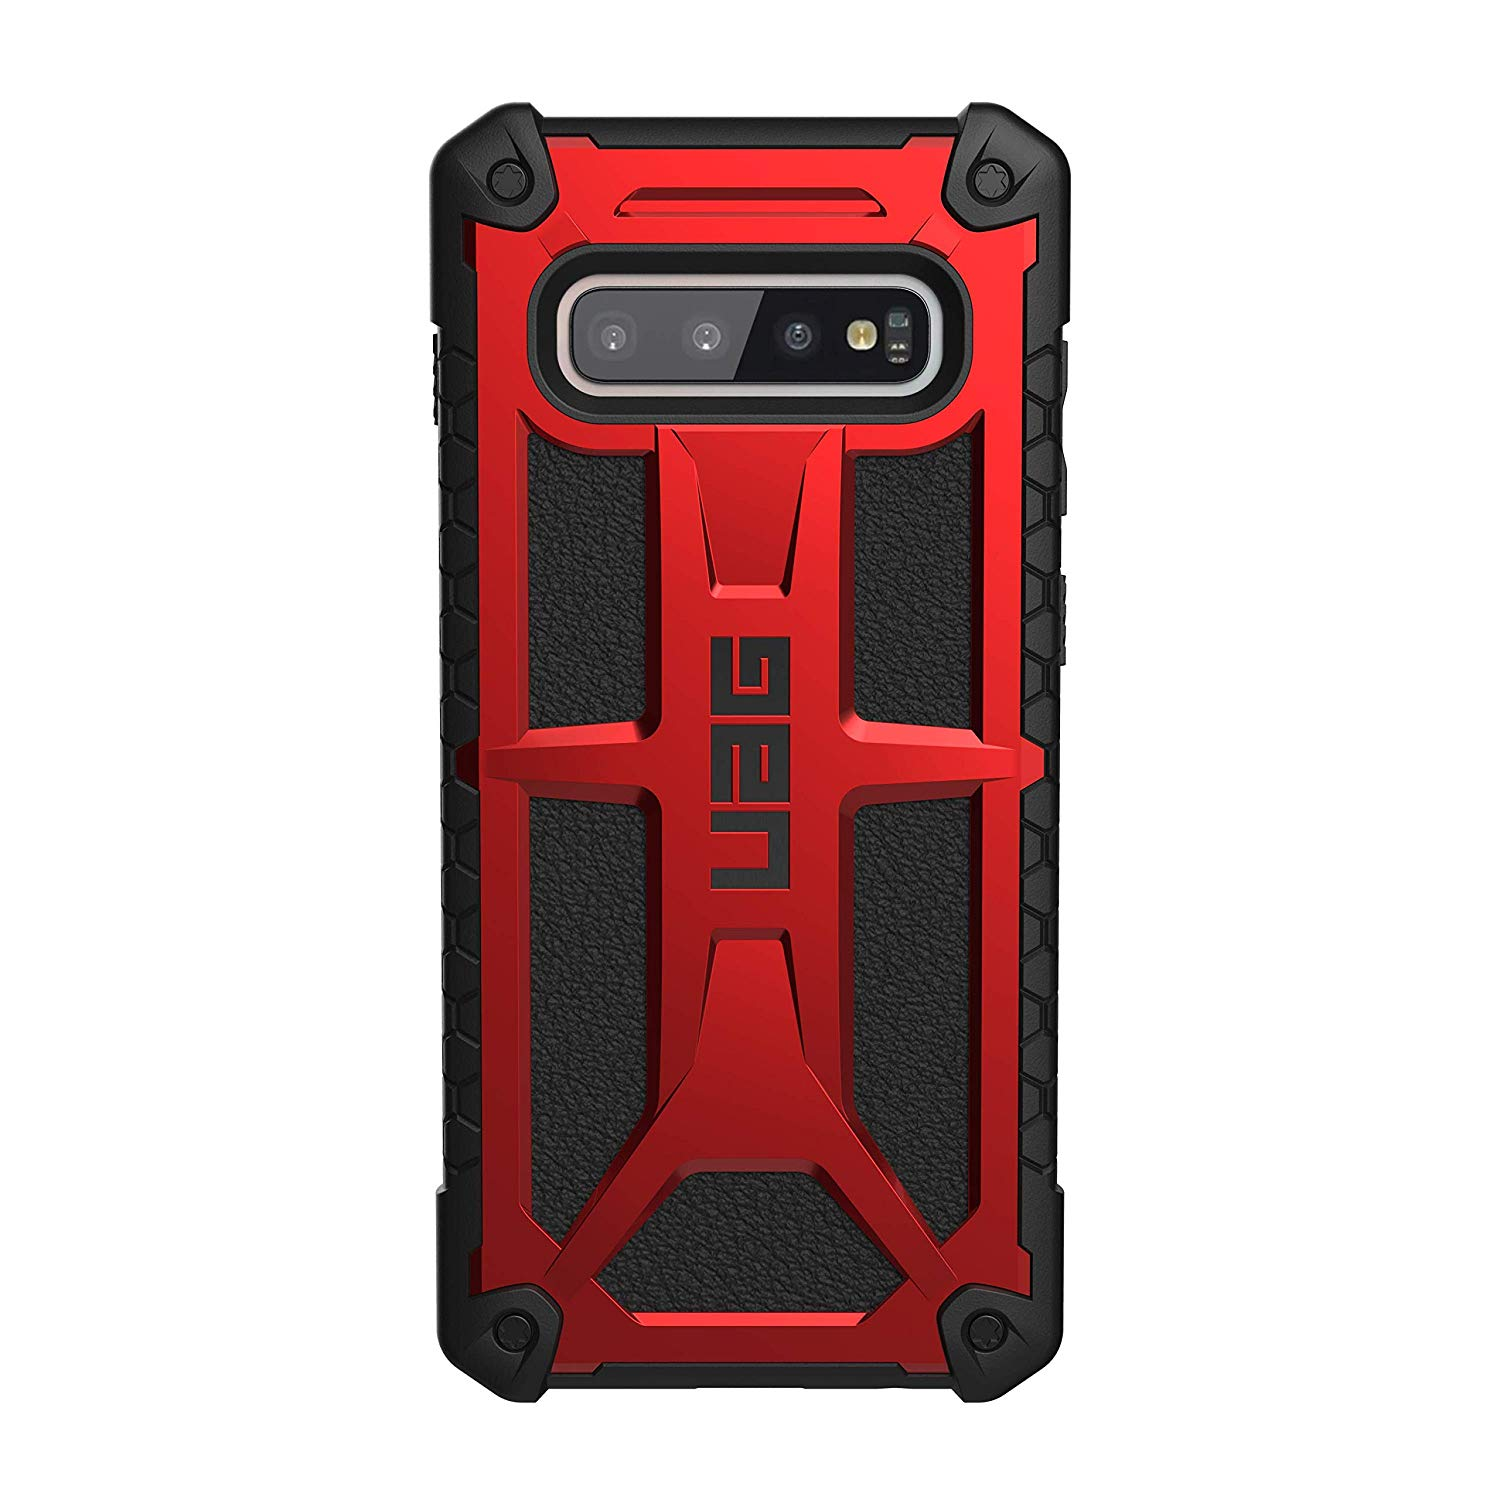 Etui Urban Armor Gear Monarch dla Galaxy S10 Plus